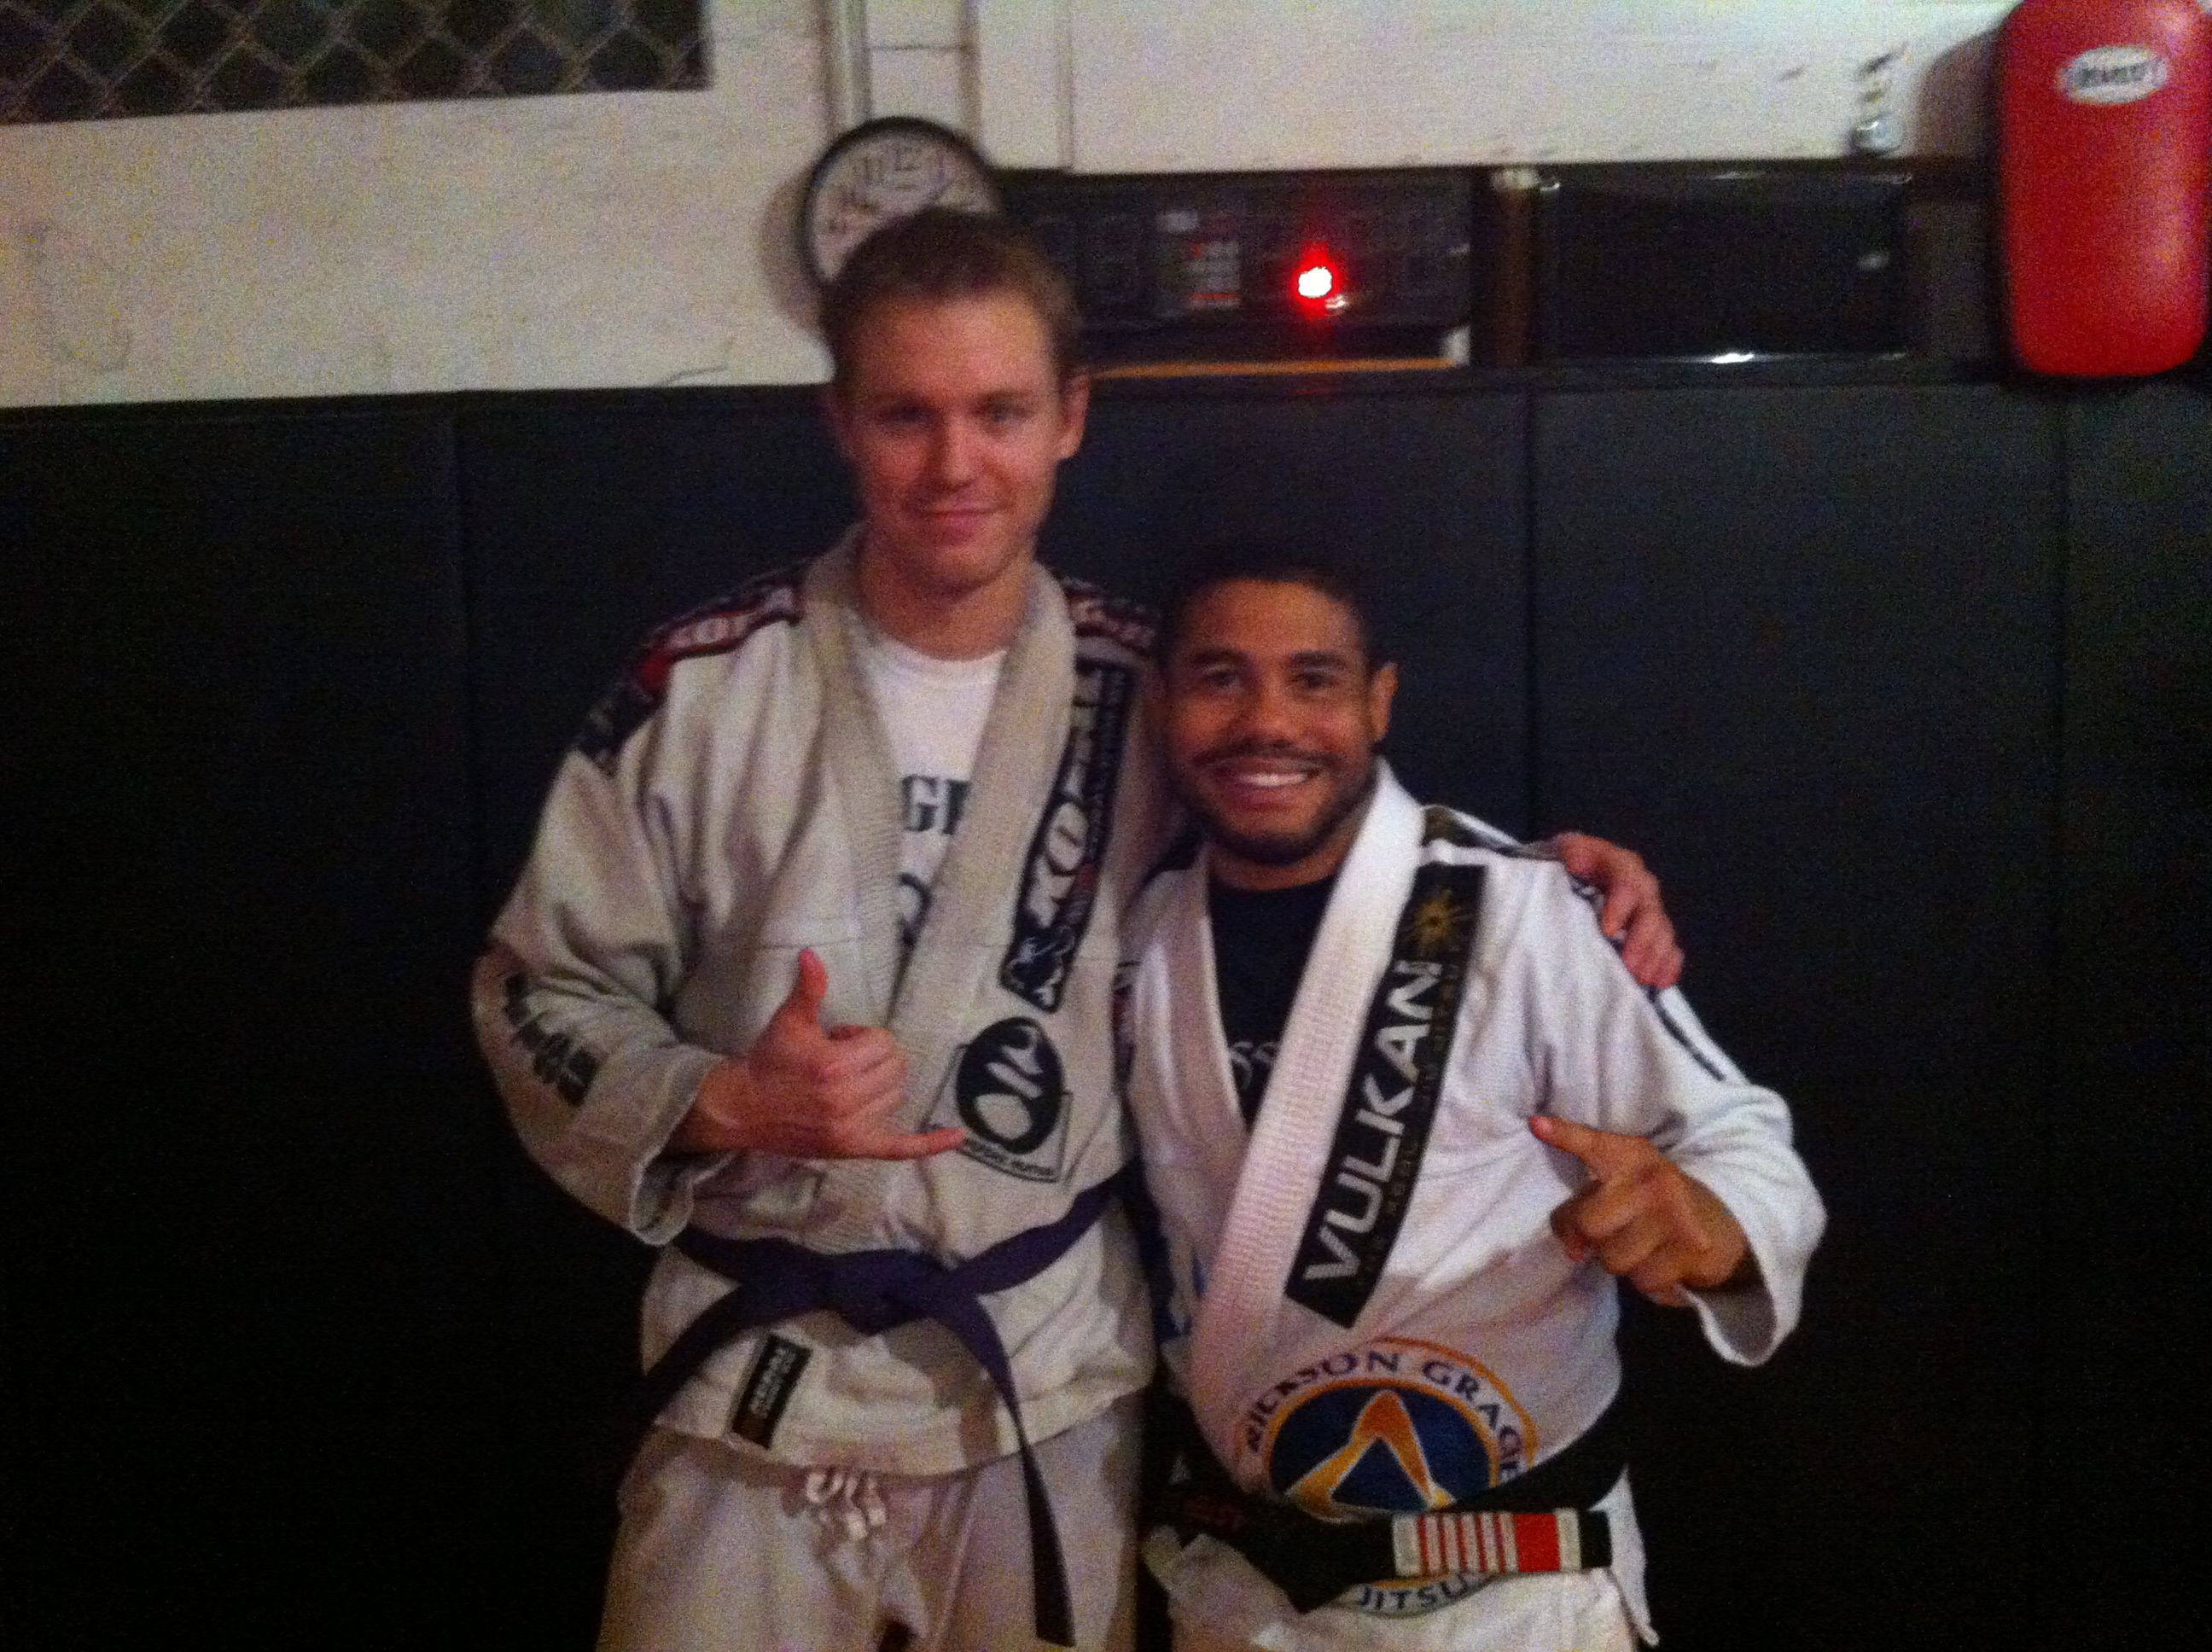 Will Caldwell with 5th degree #bjj black belt Cleber Luciano. Photo taken in at Luling Mixed Martial Arts.